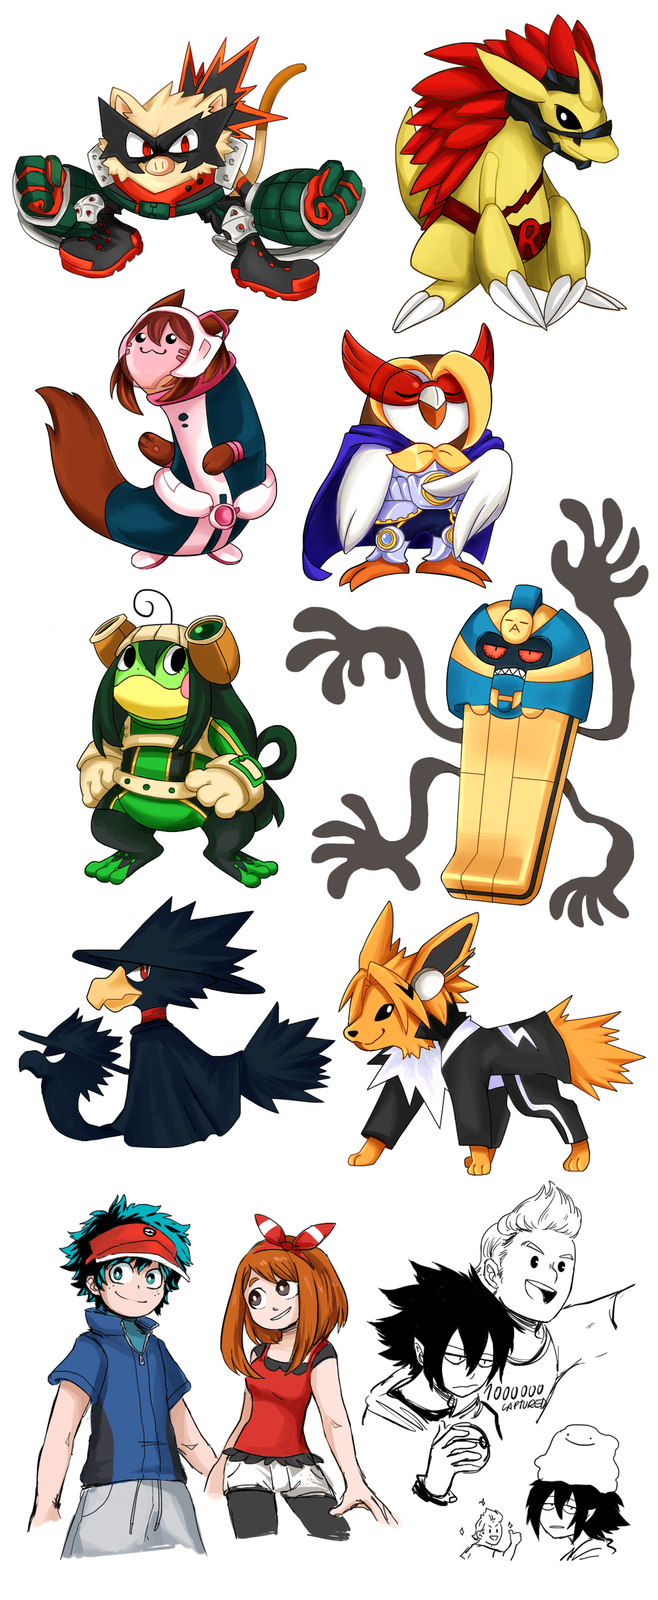 Pokémon x and y pokémon sun and moon cartoon fictional character clip art fiction